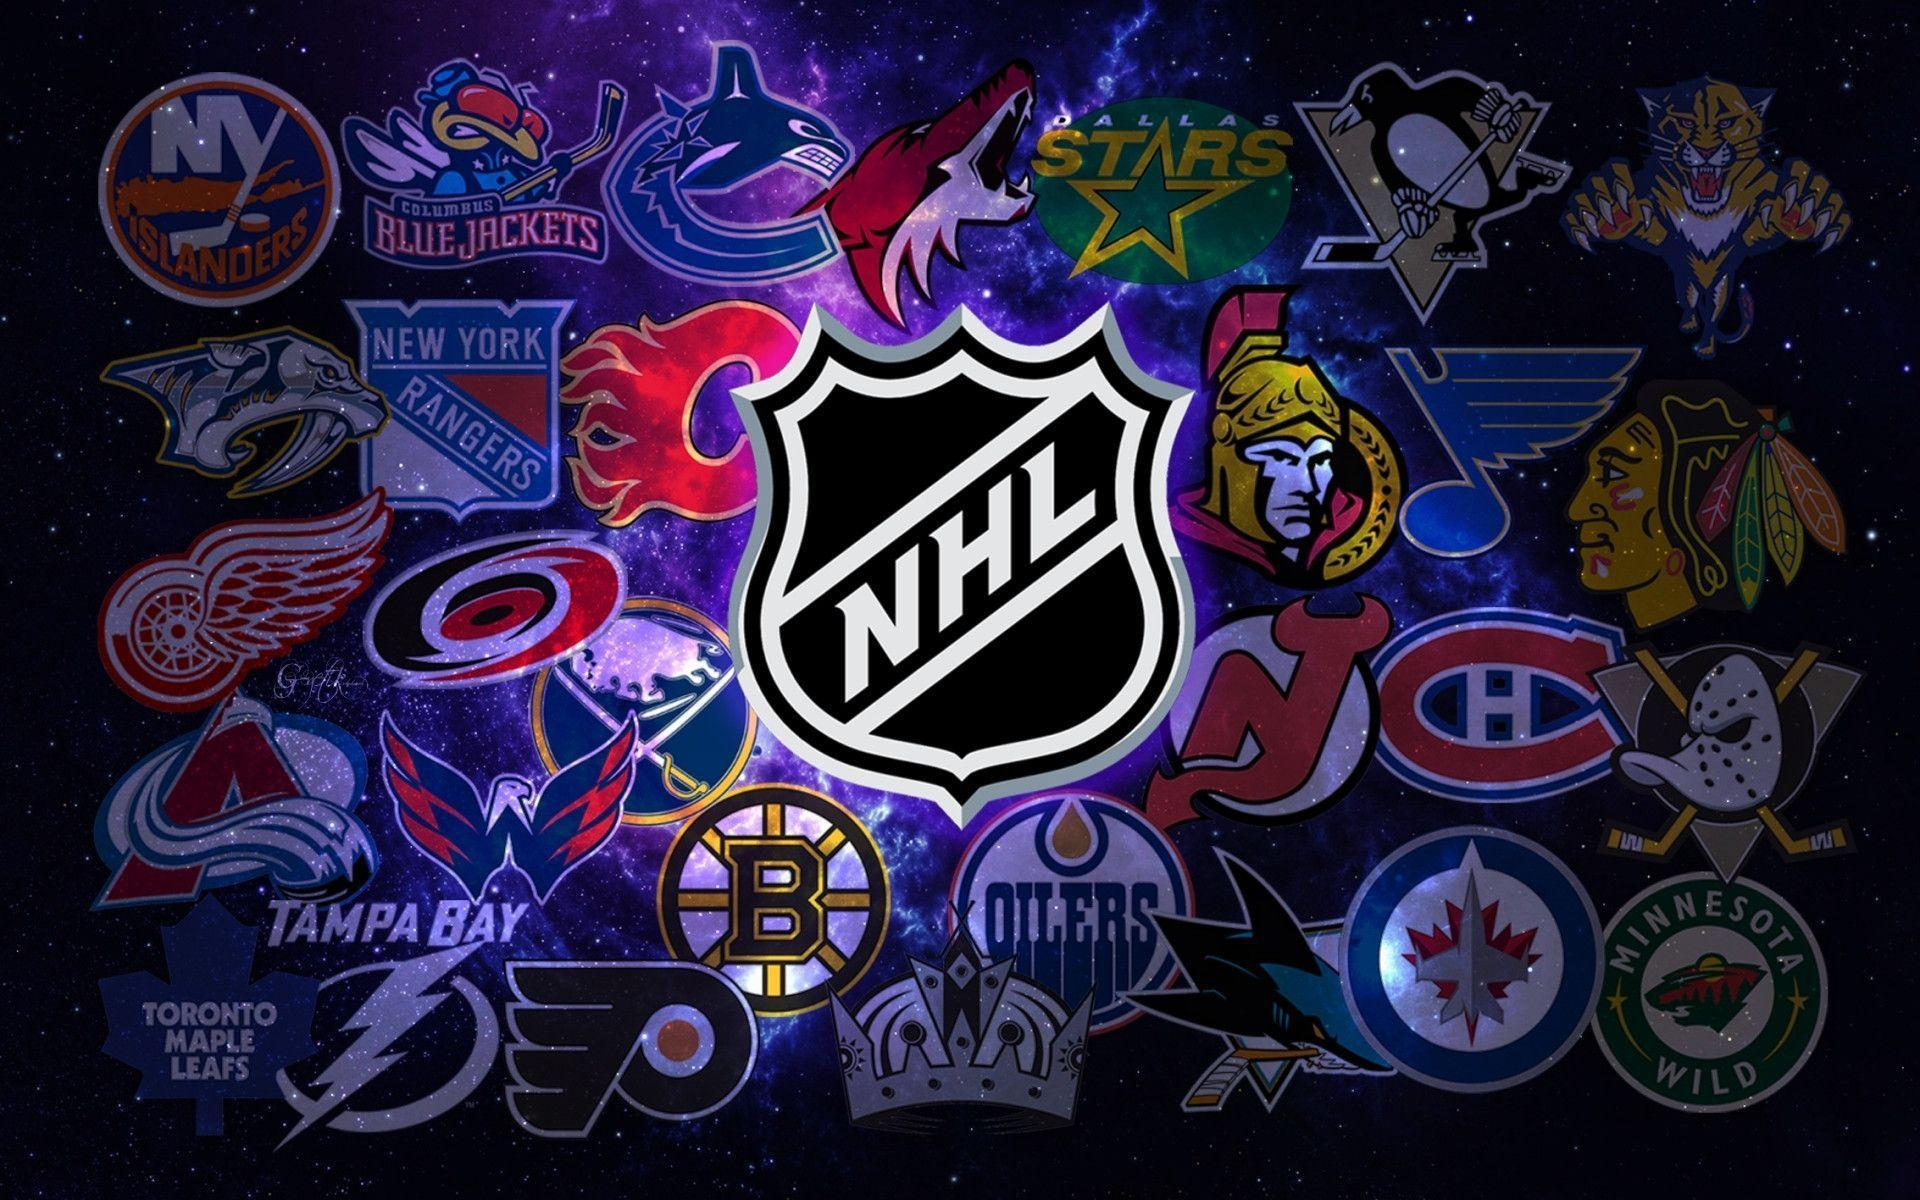 Nhl wallpapers wallpaper cave - Nhl hockey wallpapers ...